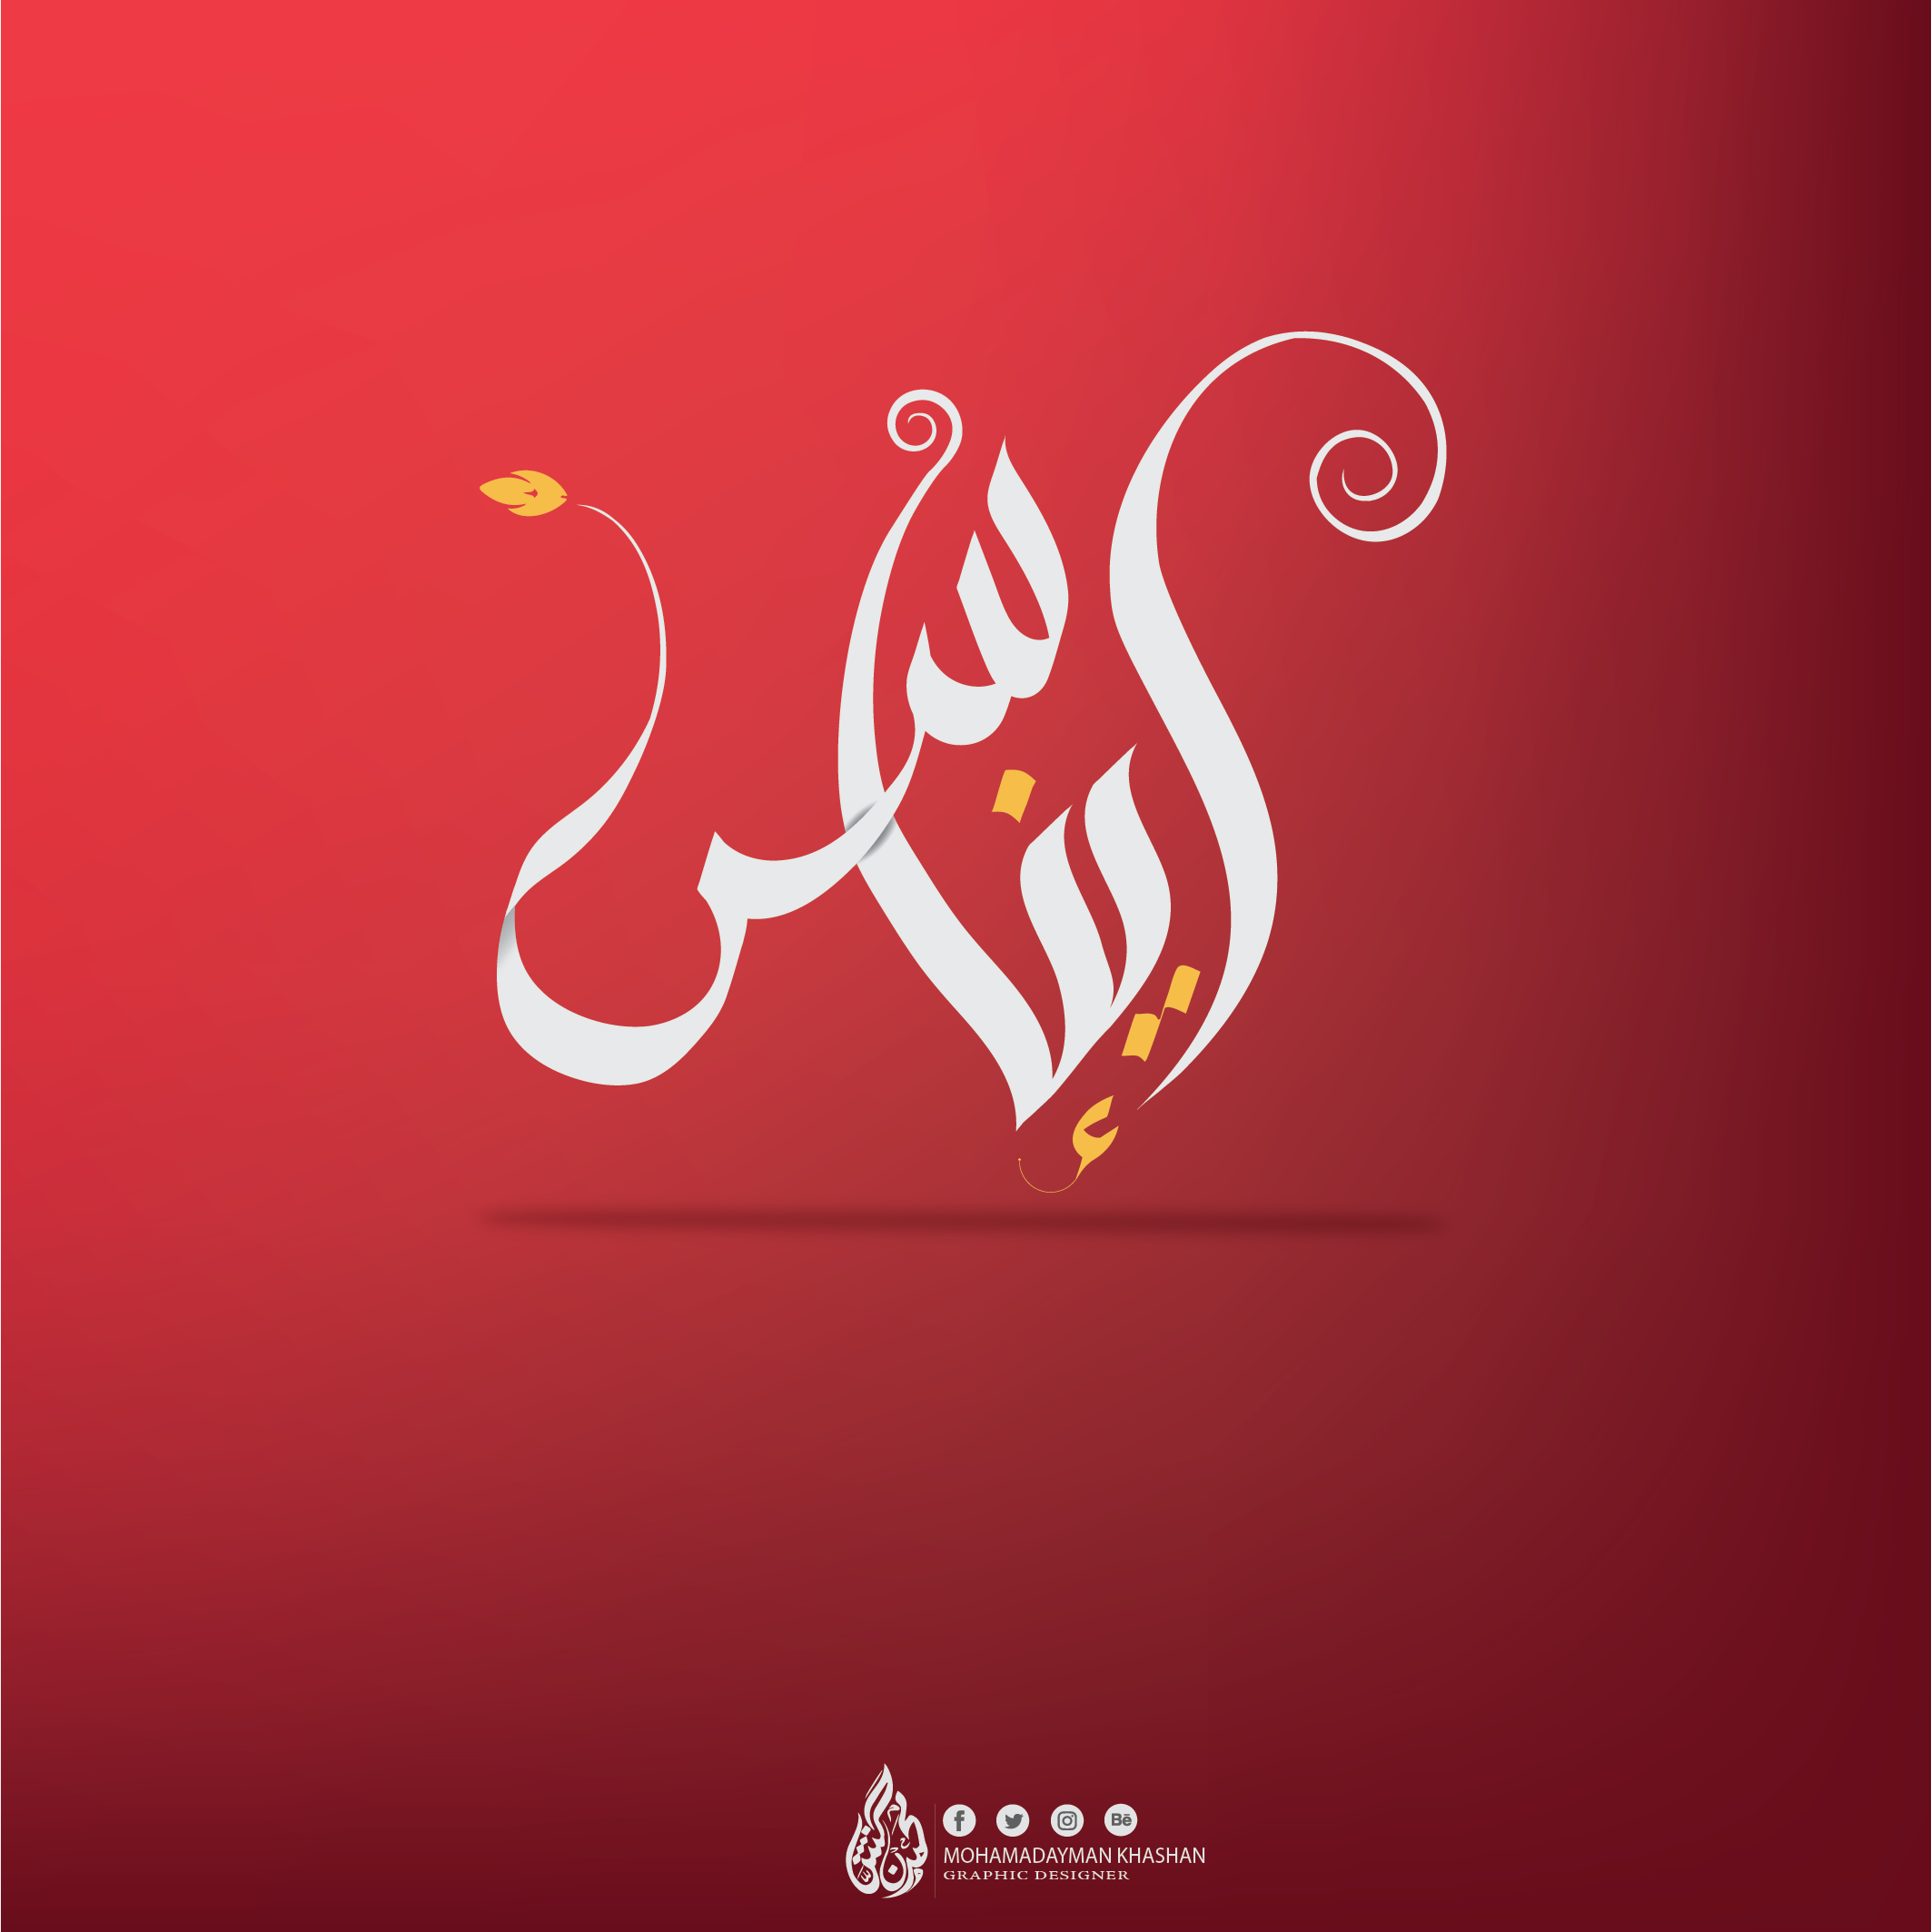 Check out my behance project ucاسم ايناس design typography art